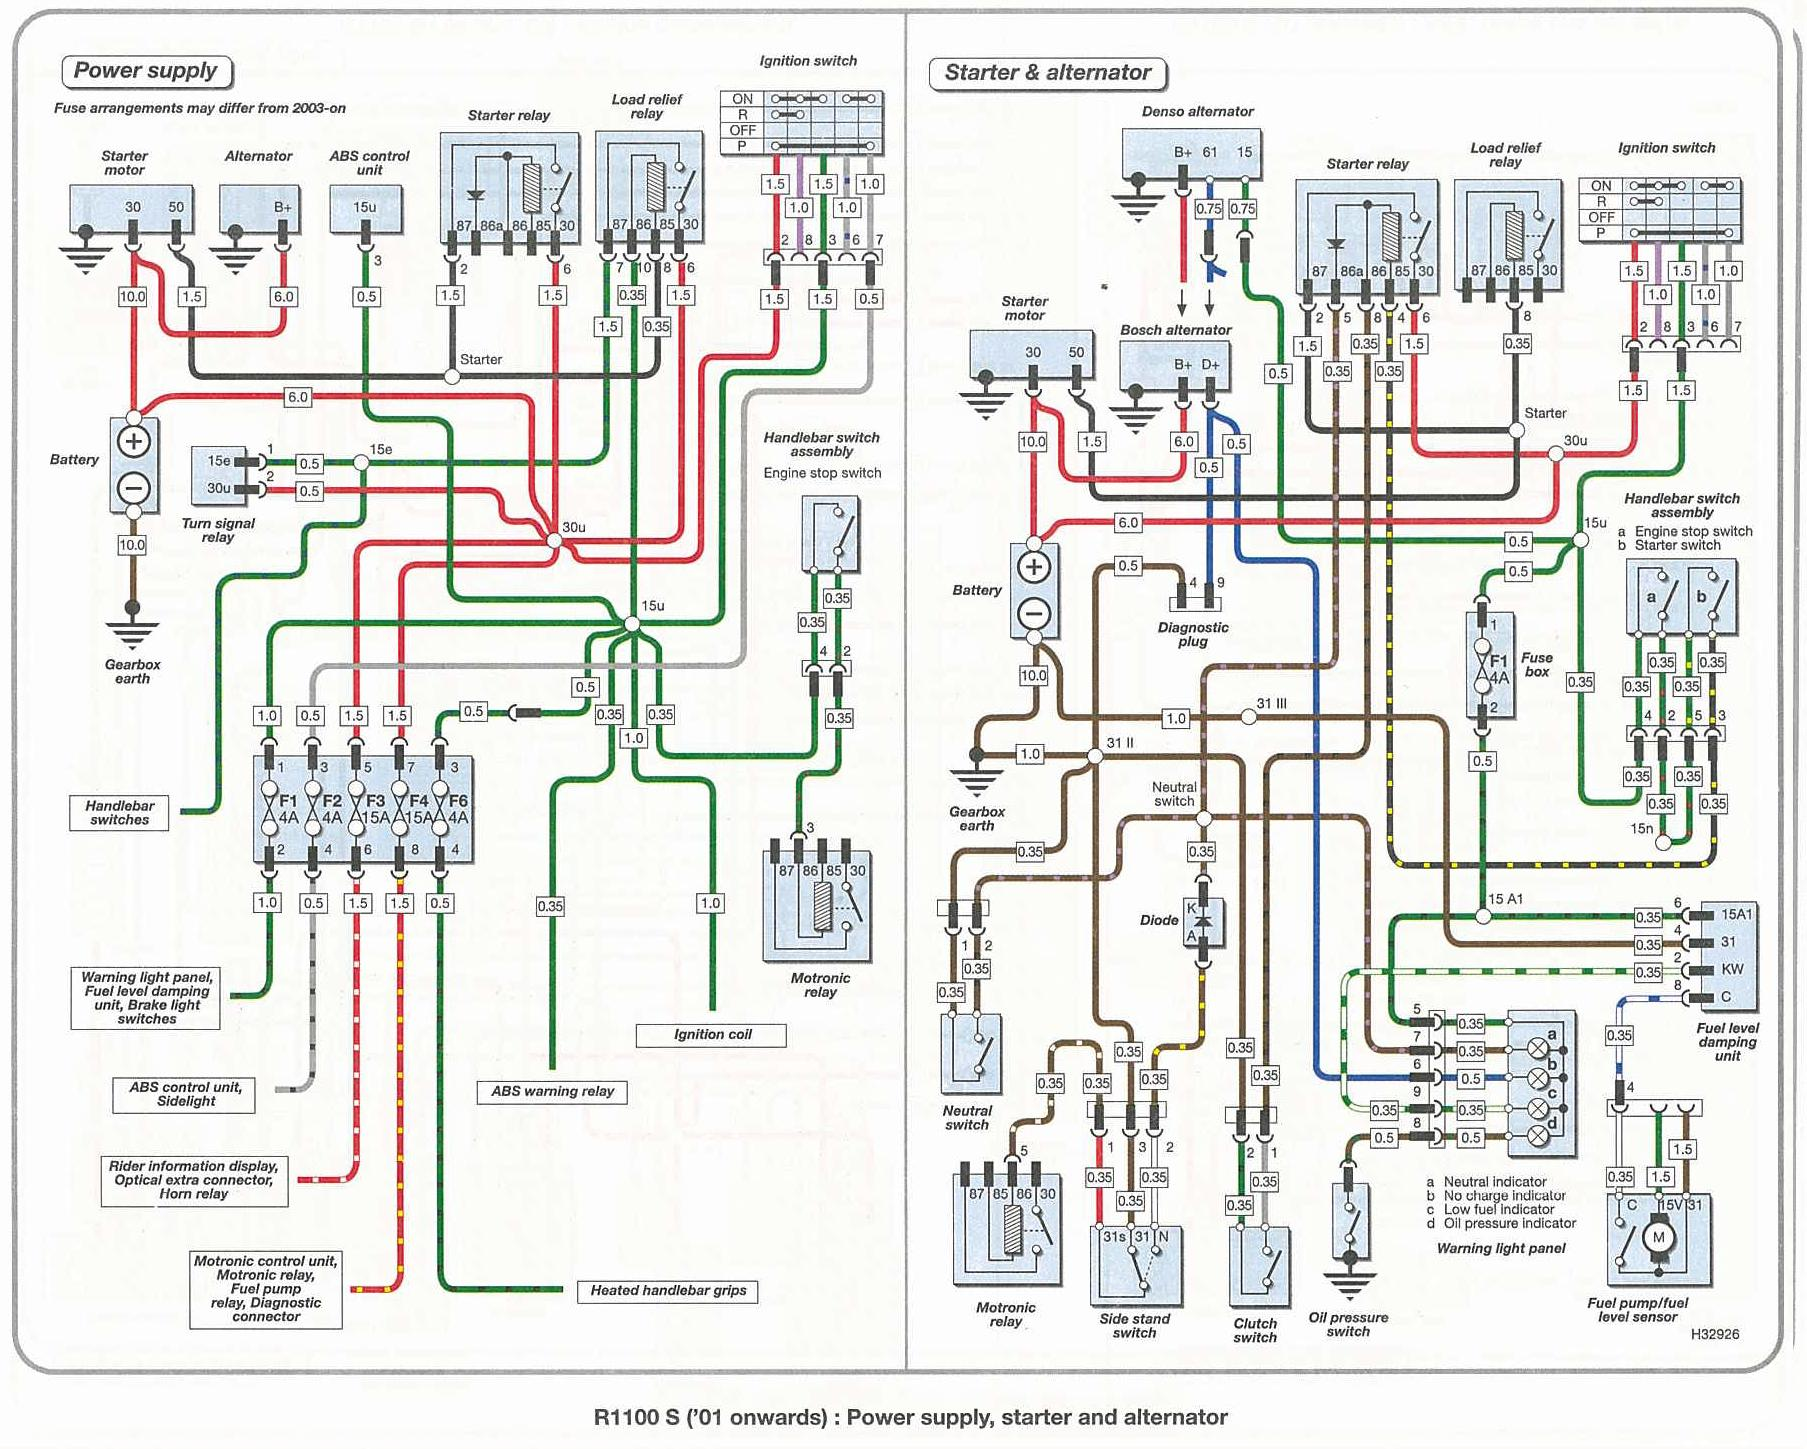 bmw e30 wiring diagram wirdig wiring diagram as well bmw e46 radio wiring diagram also bmw e30